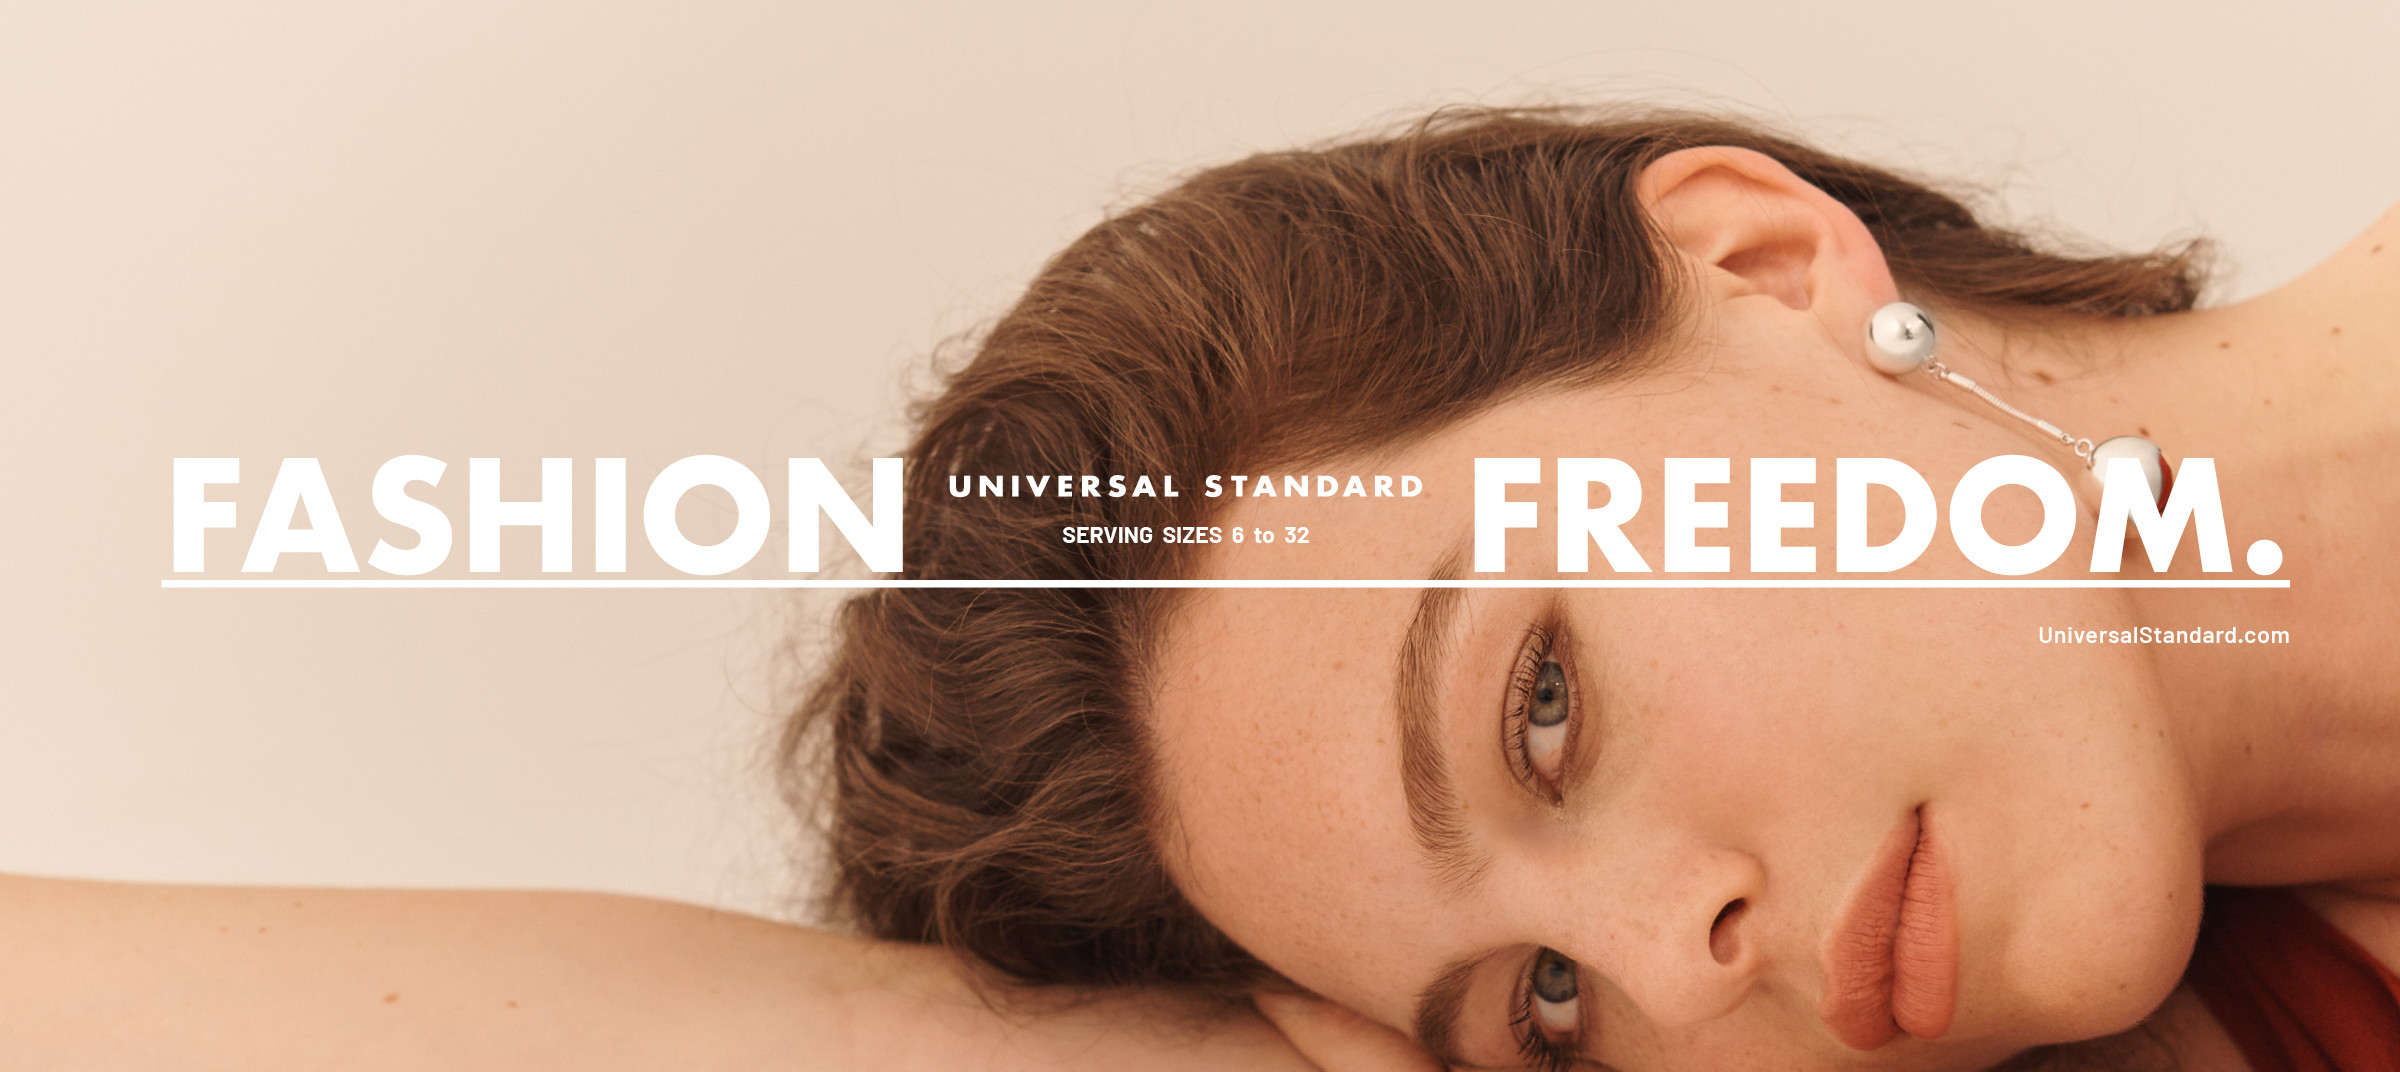 Universal Standard's Fit Liberty program in campaign by DTE Studio.